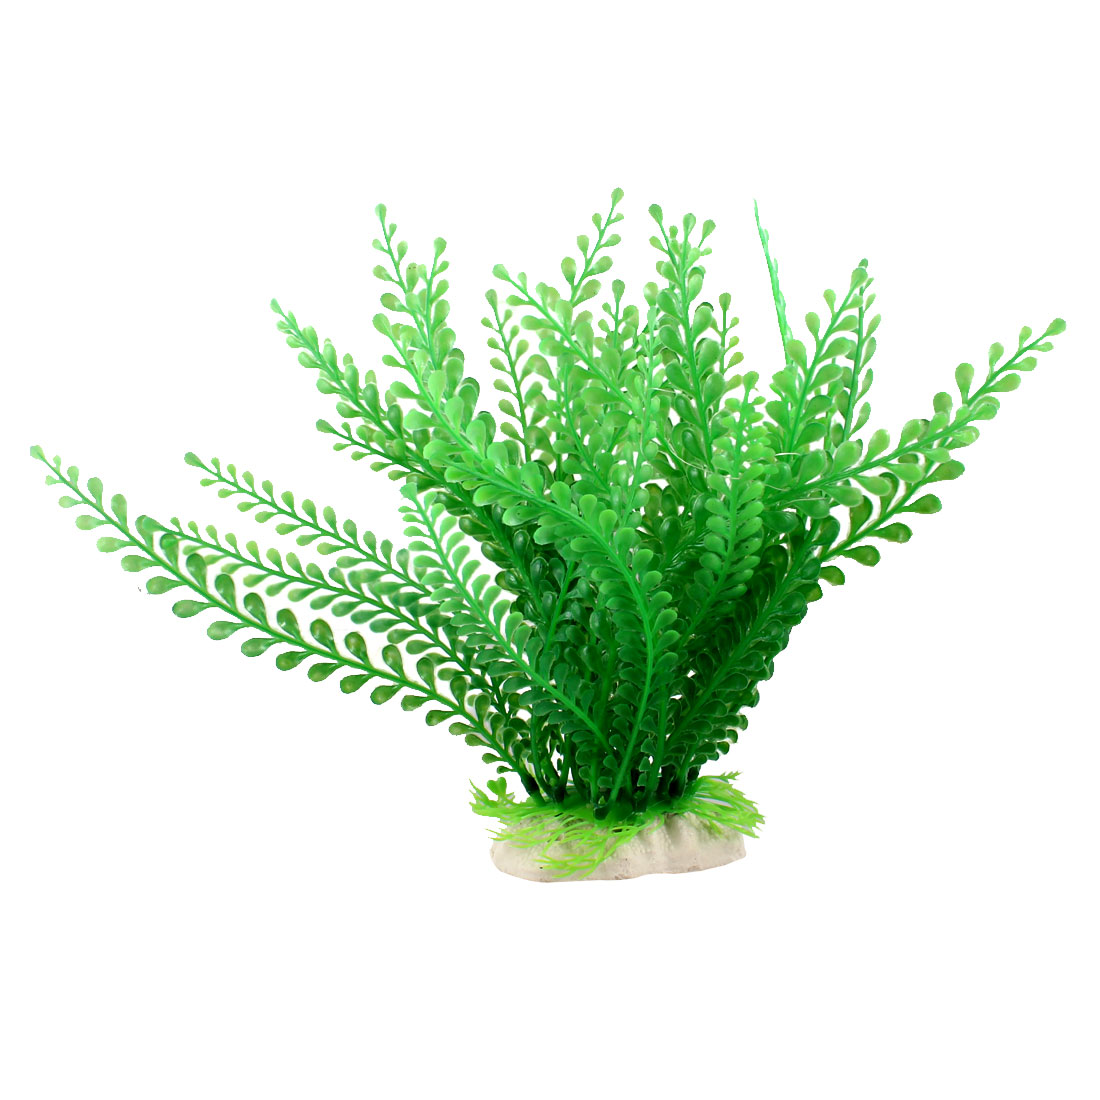 "8.9"" Height Simulation Green Tree Decoration Landscaping for Fishtank"